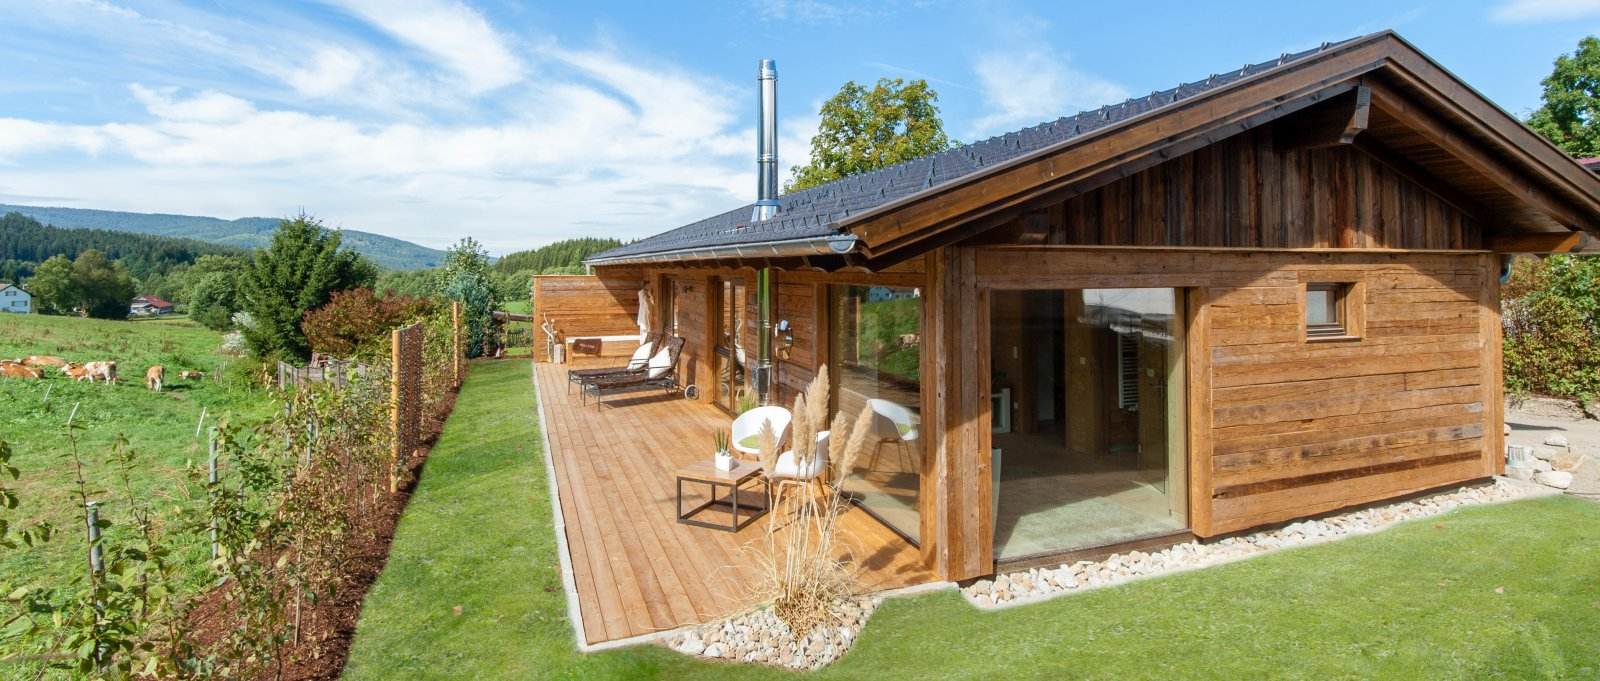 Luxus Chalets der Pension Köpplwirt Drachselsried